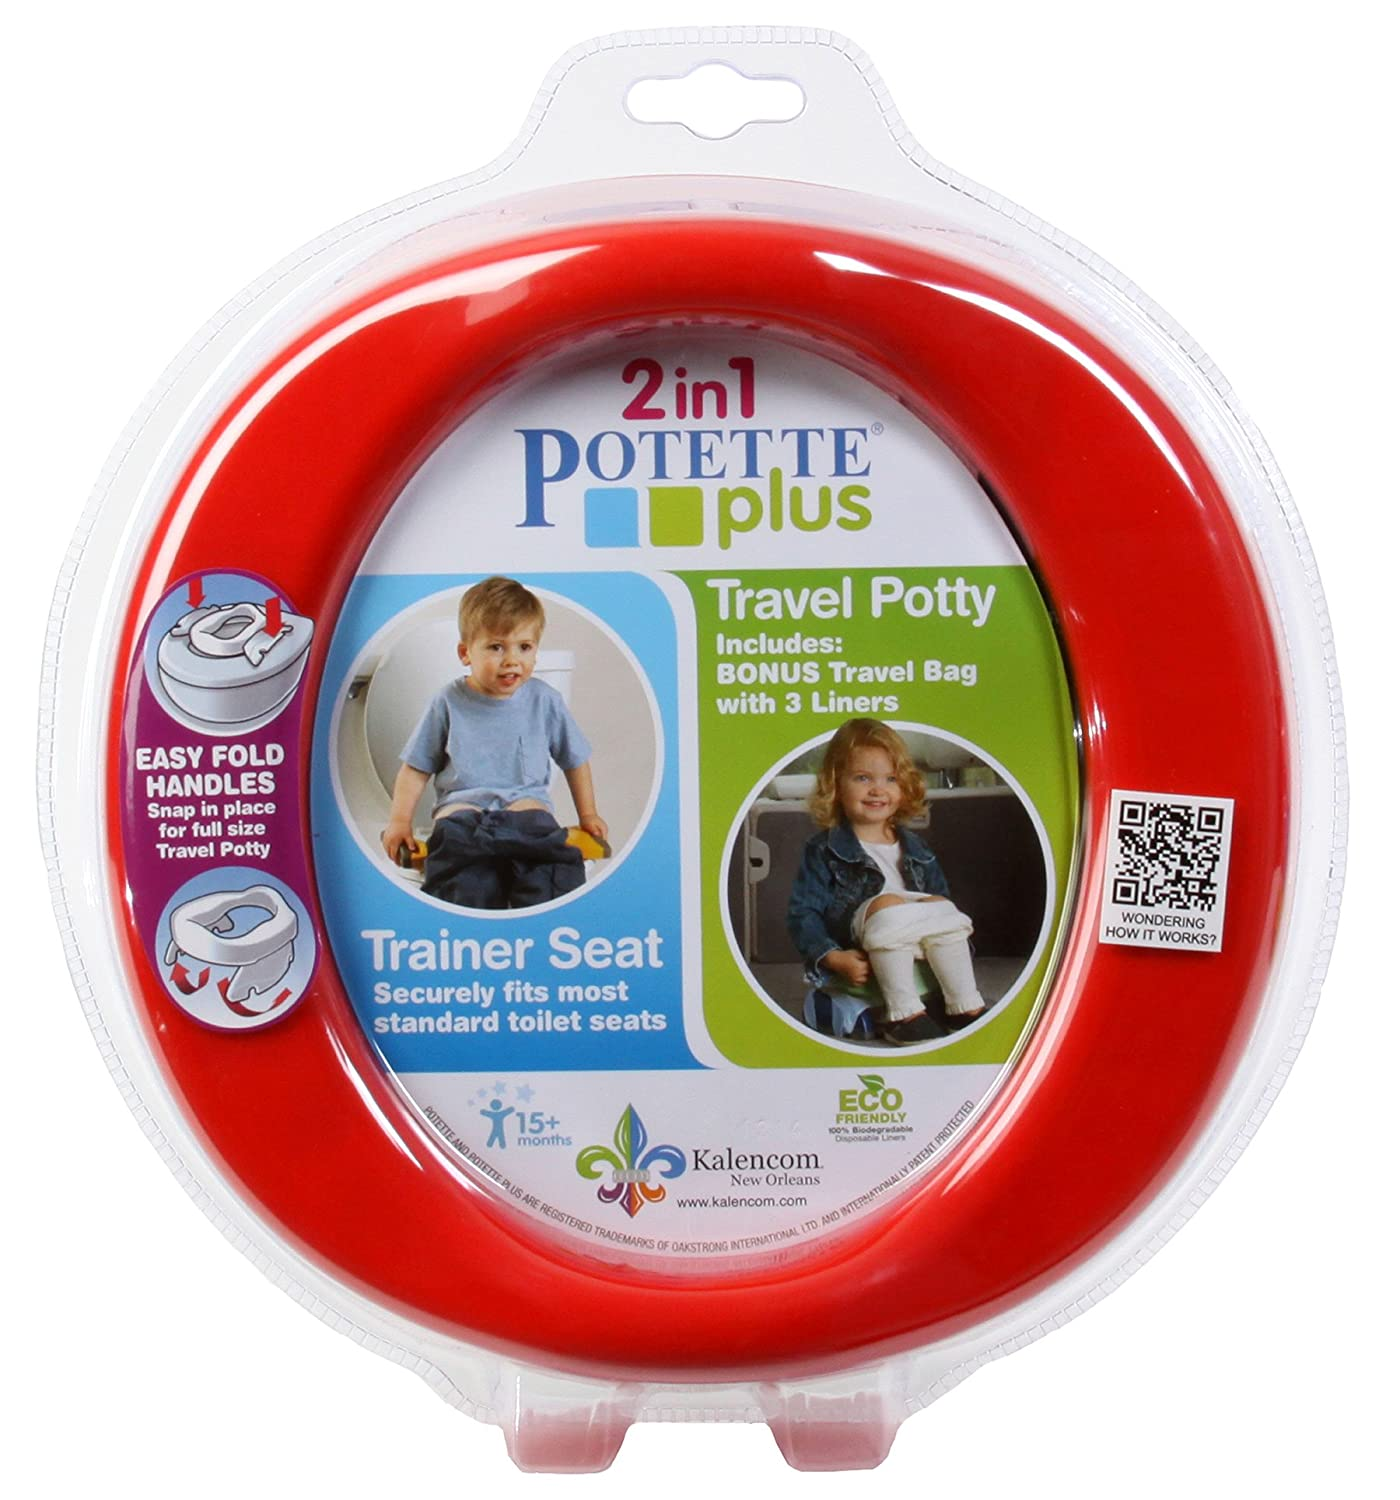 Potette Plus Travel Potty, Red Nuby PP2730RD